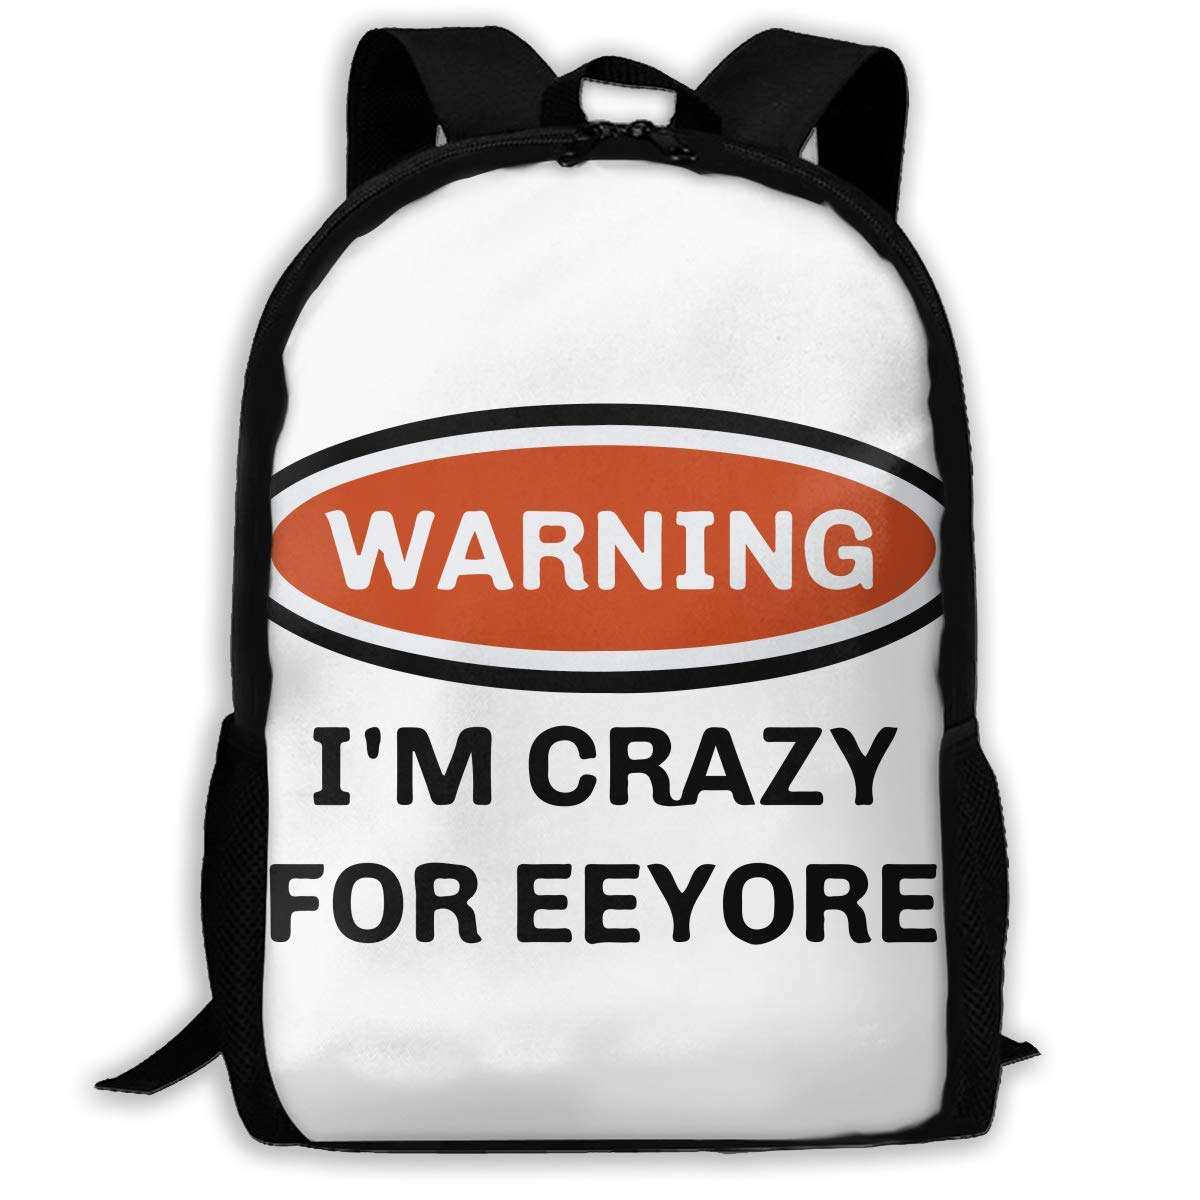 jhguihuyftyrtytgjkh Casual Backpack Warning I'm Crazy for Eeyore 3D Printing School Bags for Boys Girls Unisex Adult Shoulder Bag ILY Bag Outdoor Orts